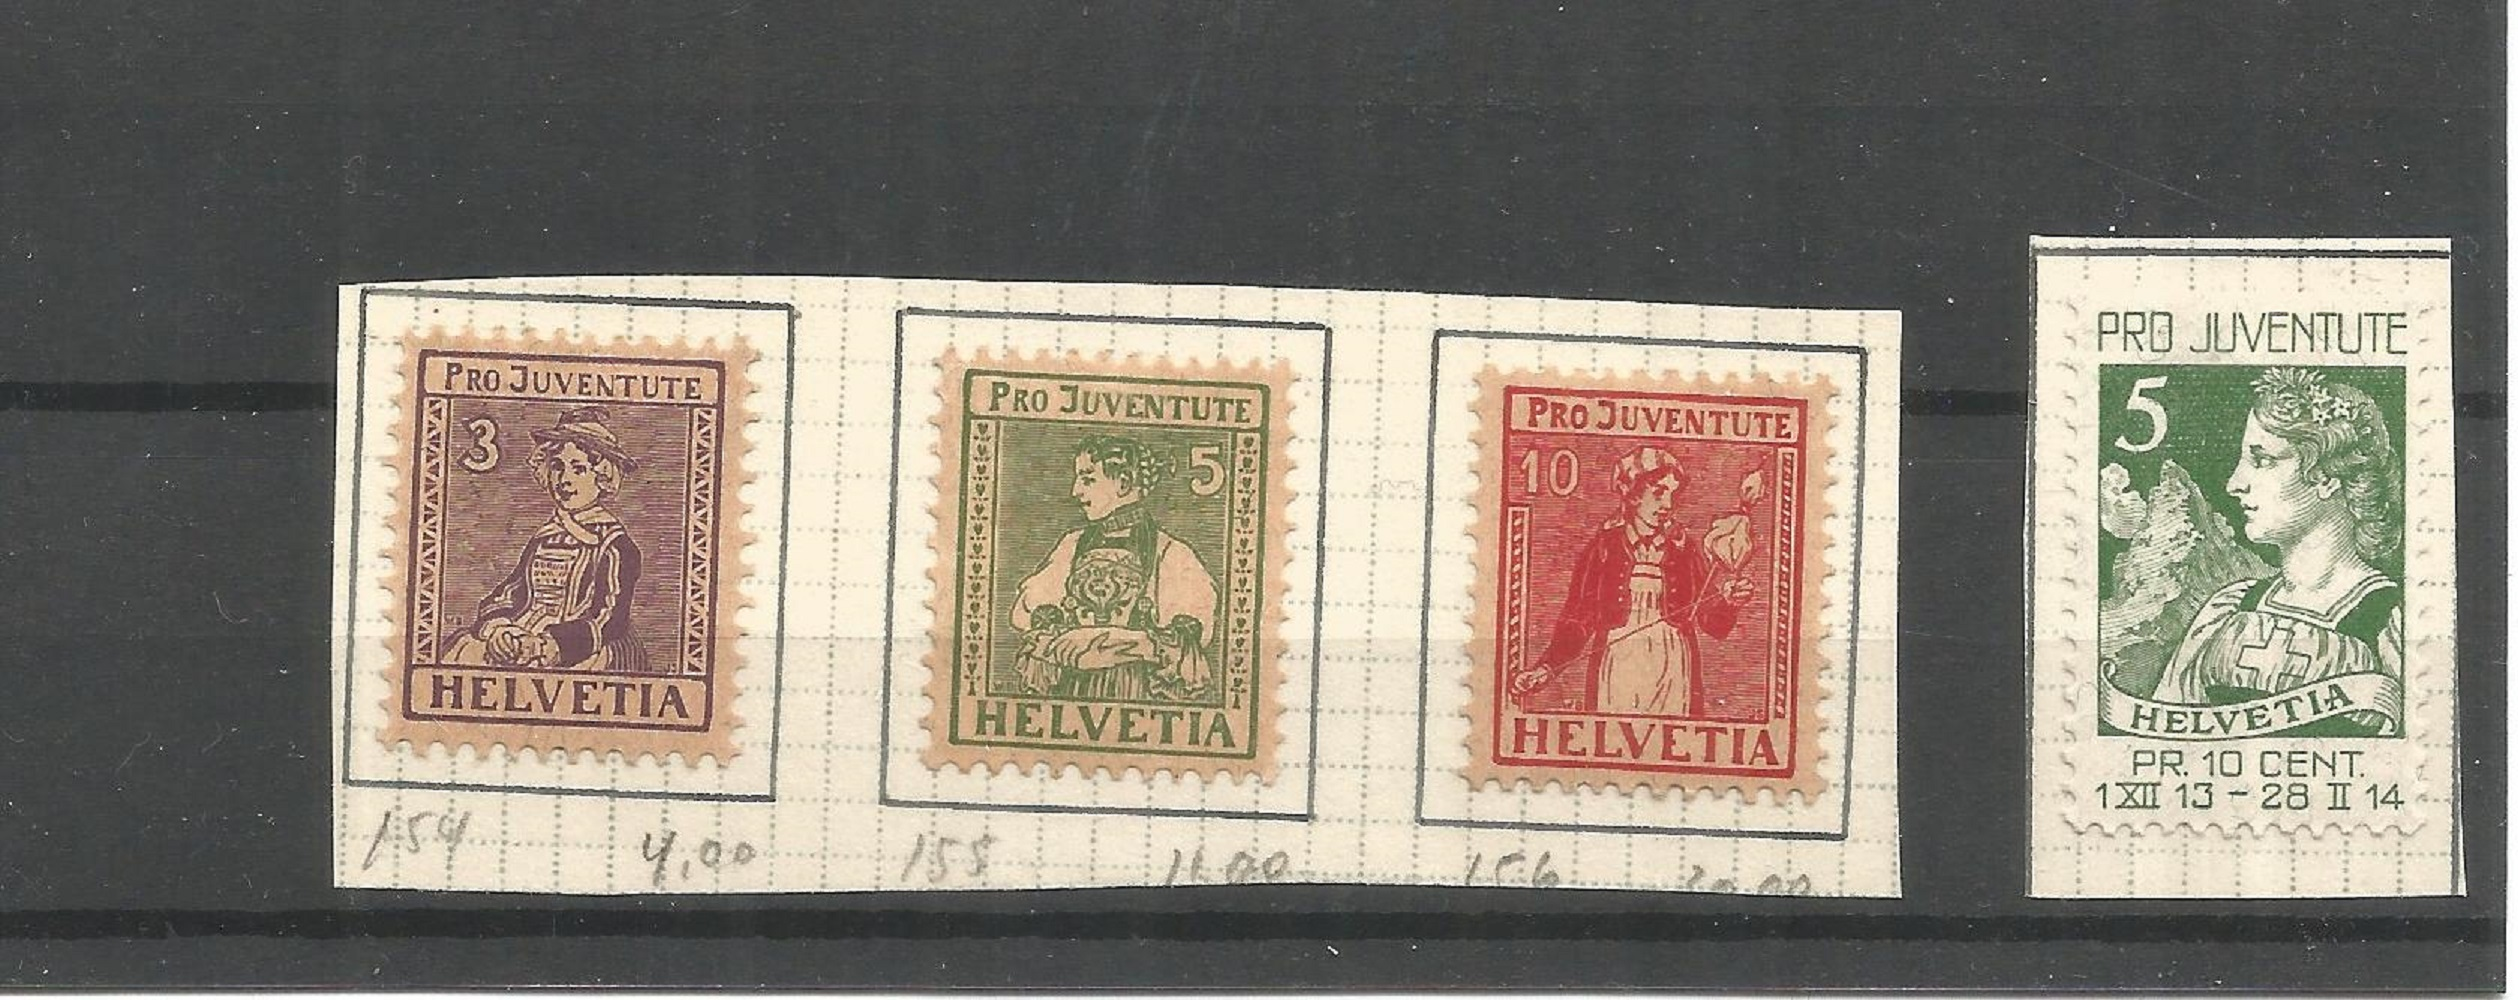 Swiss stamp collection. Childrens fund, projuventute charity stamps. All mint. 1913 J/1, 1917 J/6-